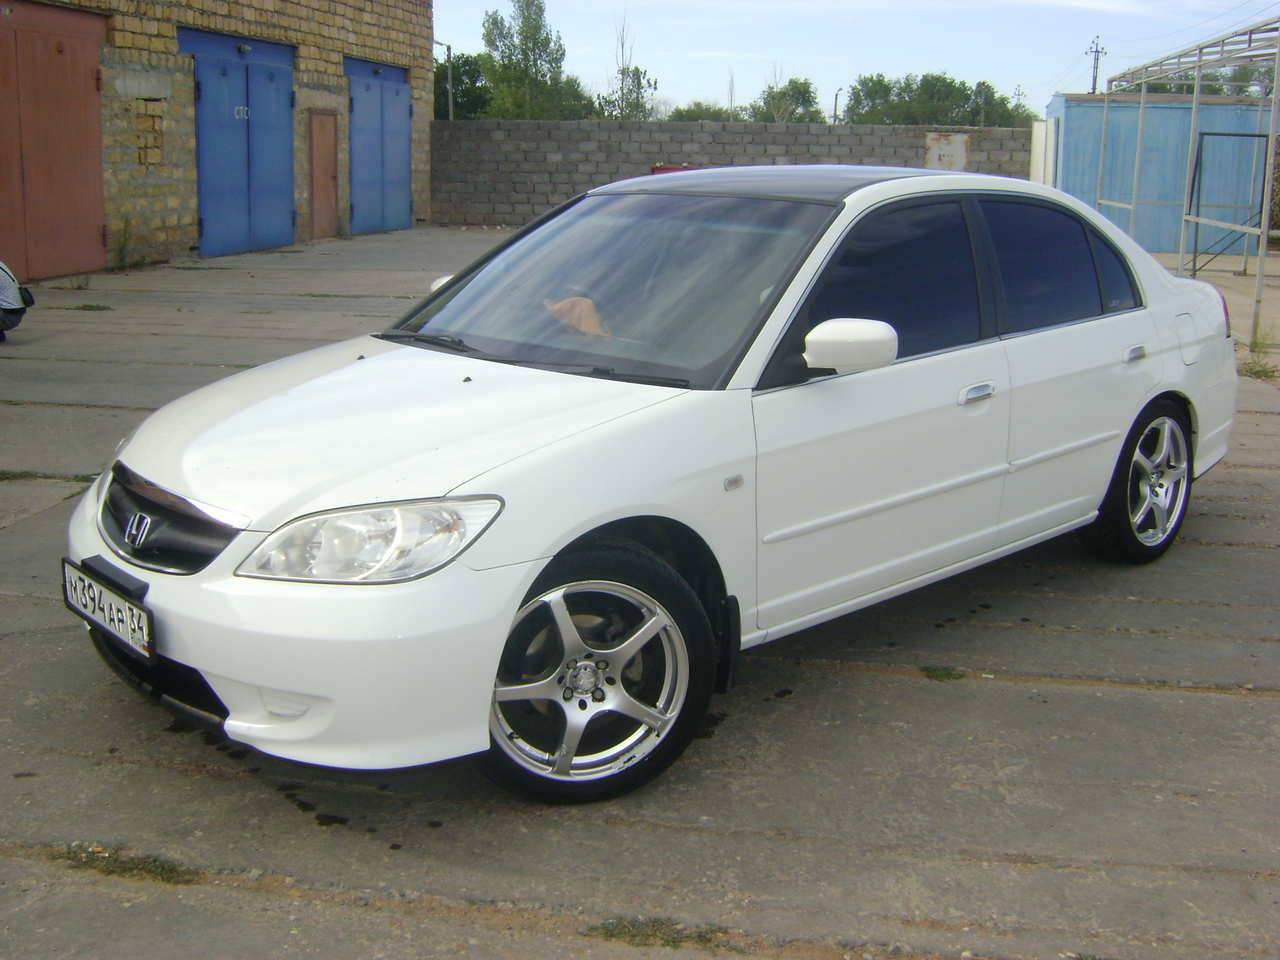 Honda Civic 1.5 2003 photo - 1